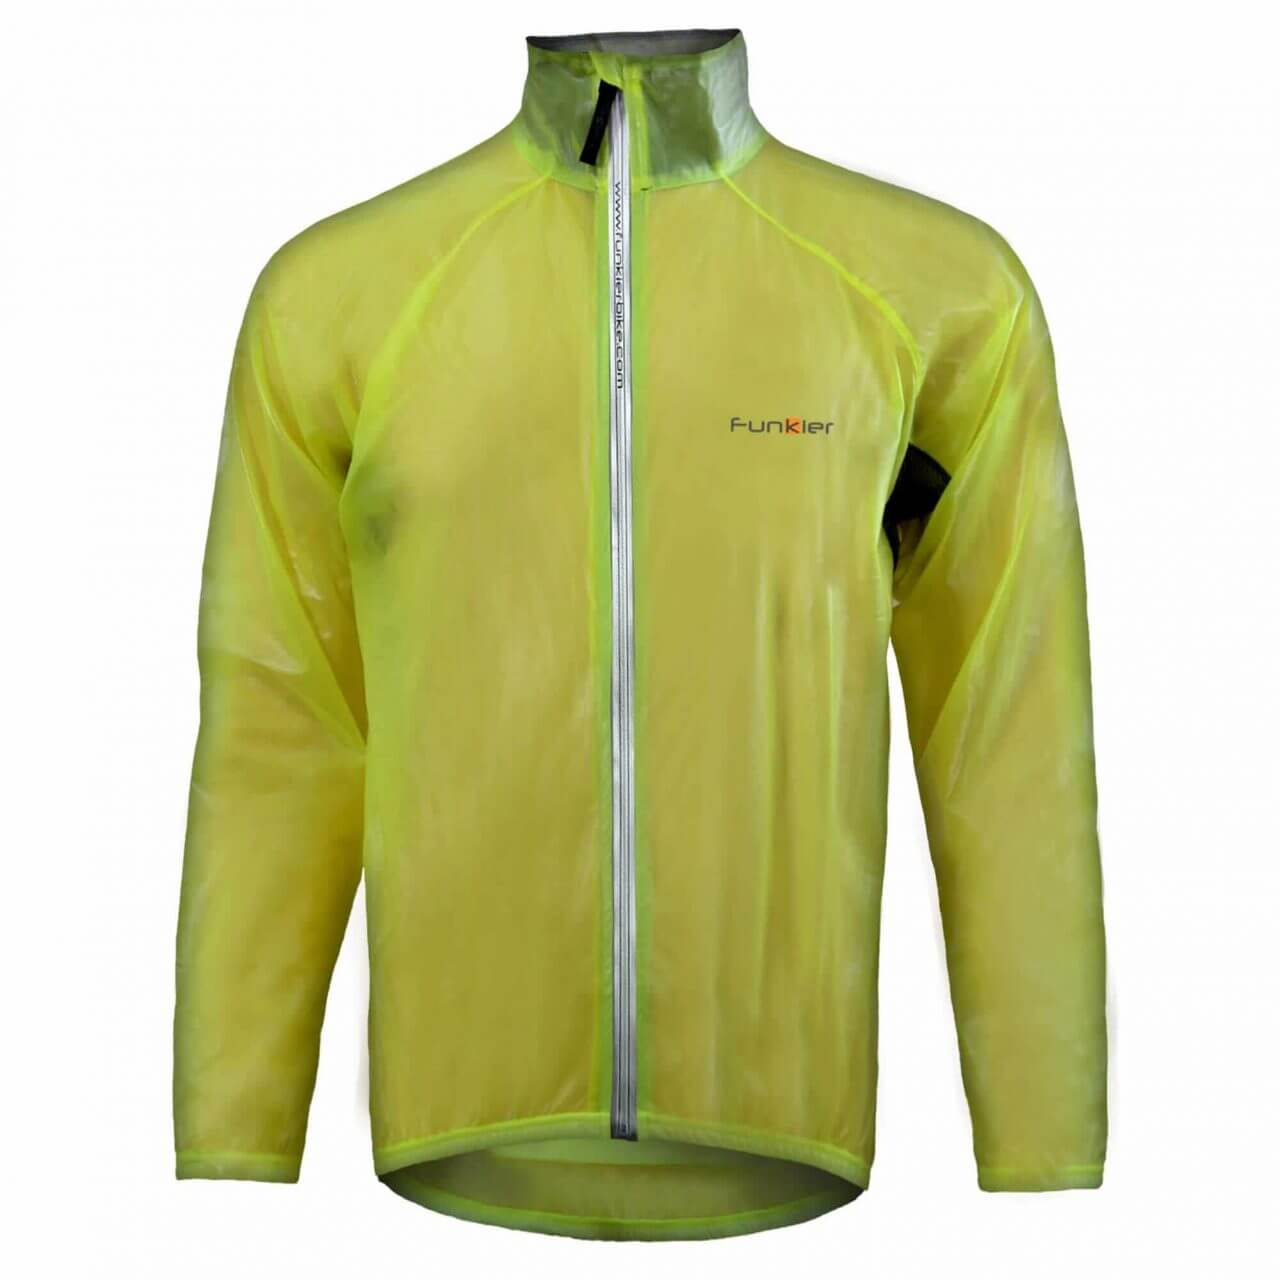 genuine shoes limited sale offer Cycling Men Rain Jacket Yellow - Funkier Bike